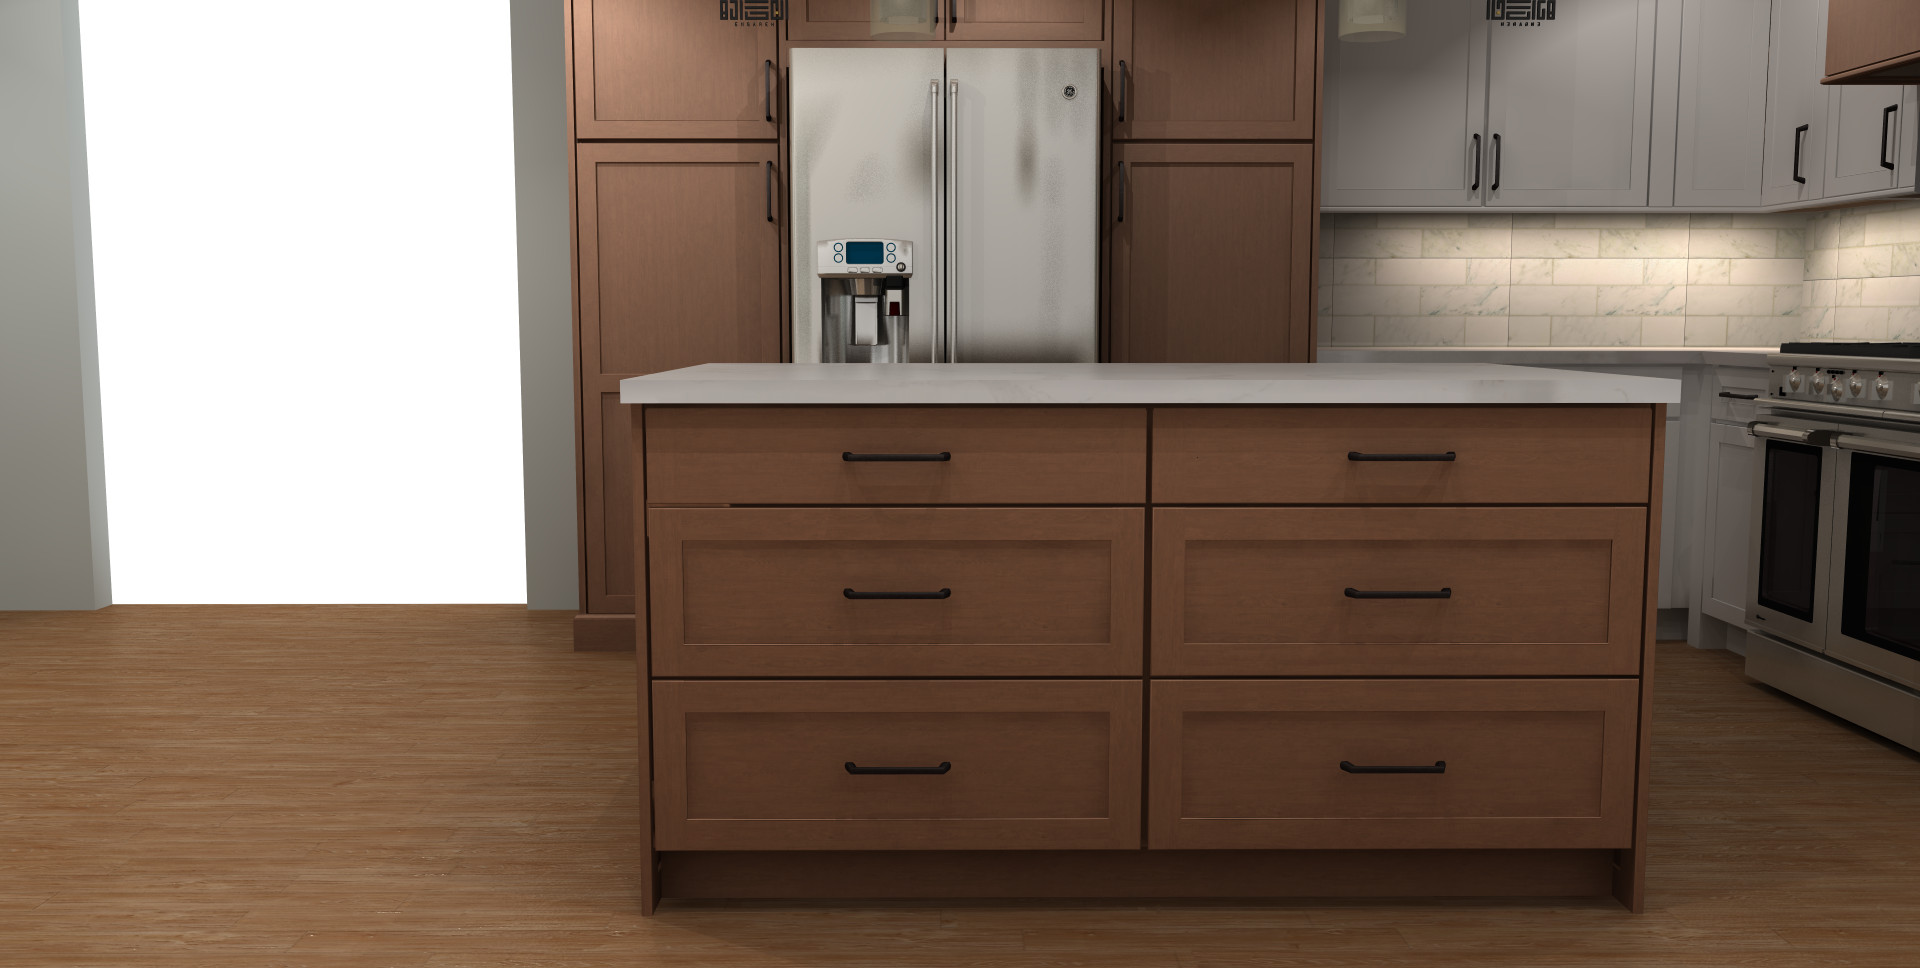 Concept Renderings of Kitchen Design for Baltimore Kitchen Remodel in the Homela